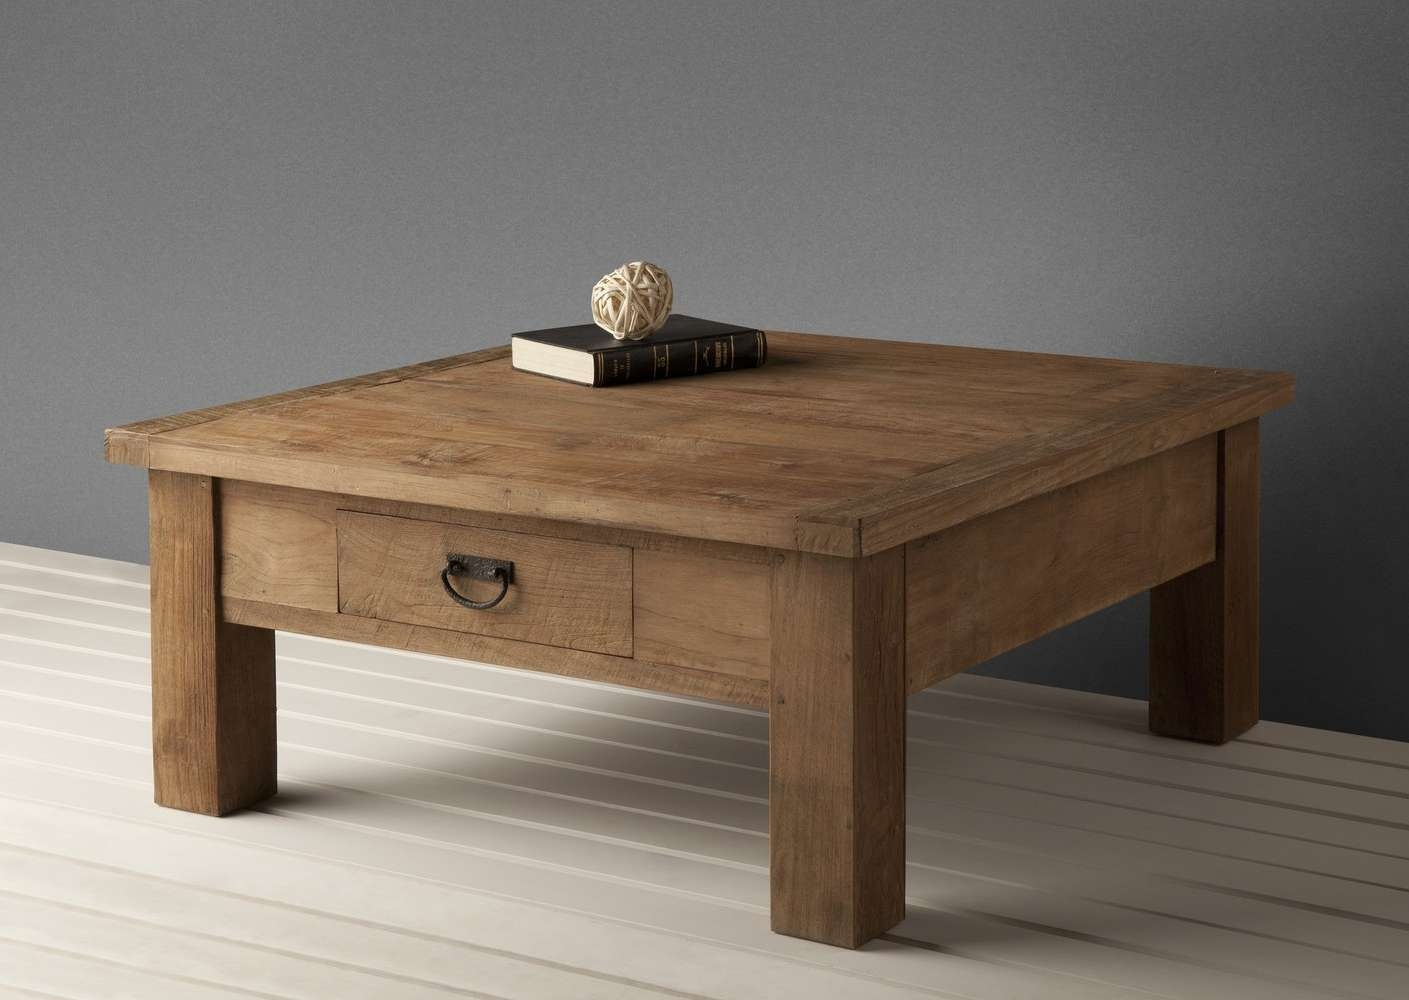 Most Recently Released Round Coffee Tables With Drawer Within Coffee Table : Coffee Table Wood Tables With Drawers And (View 11 of 20)